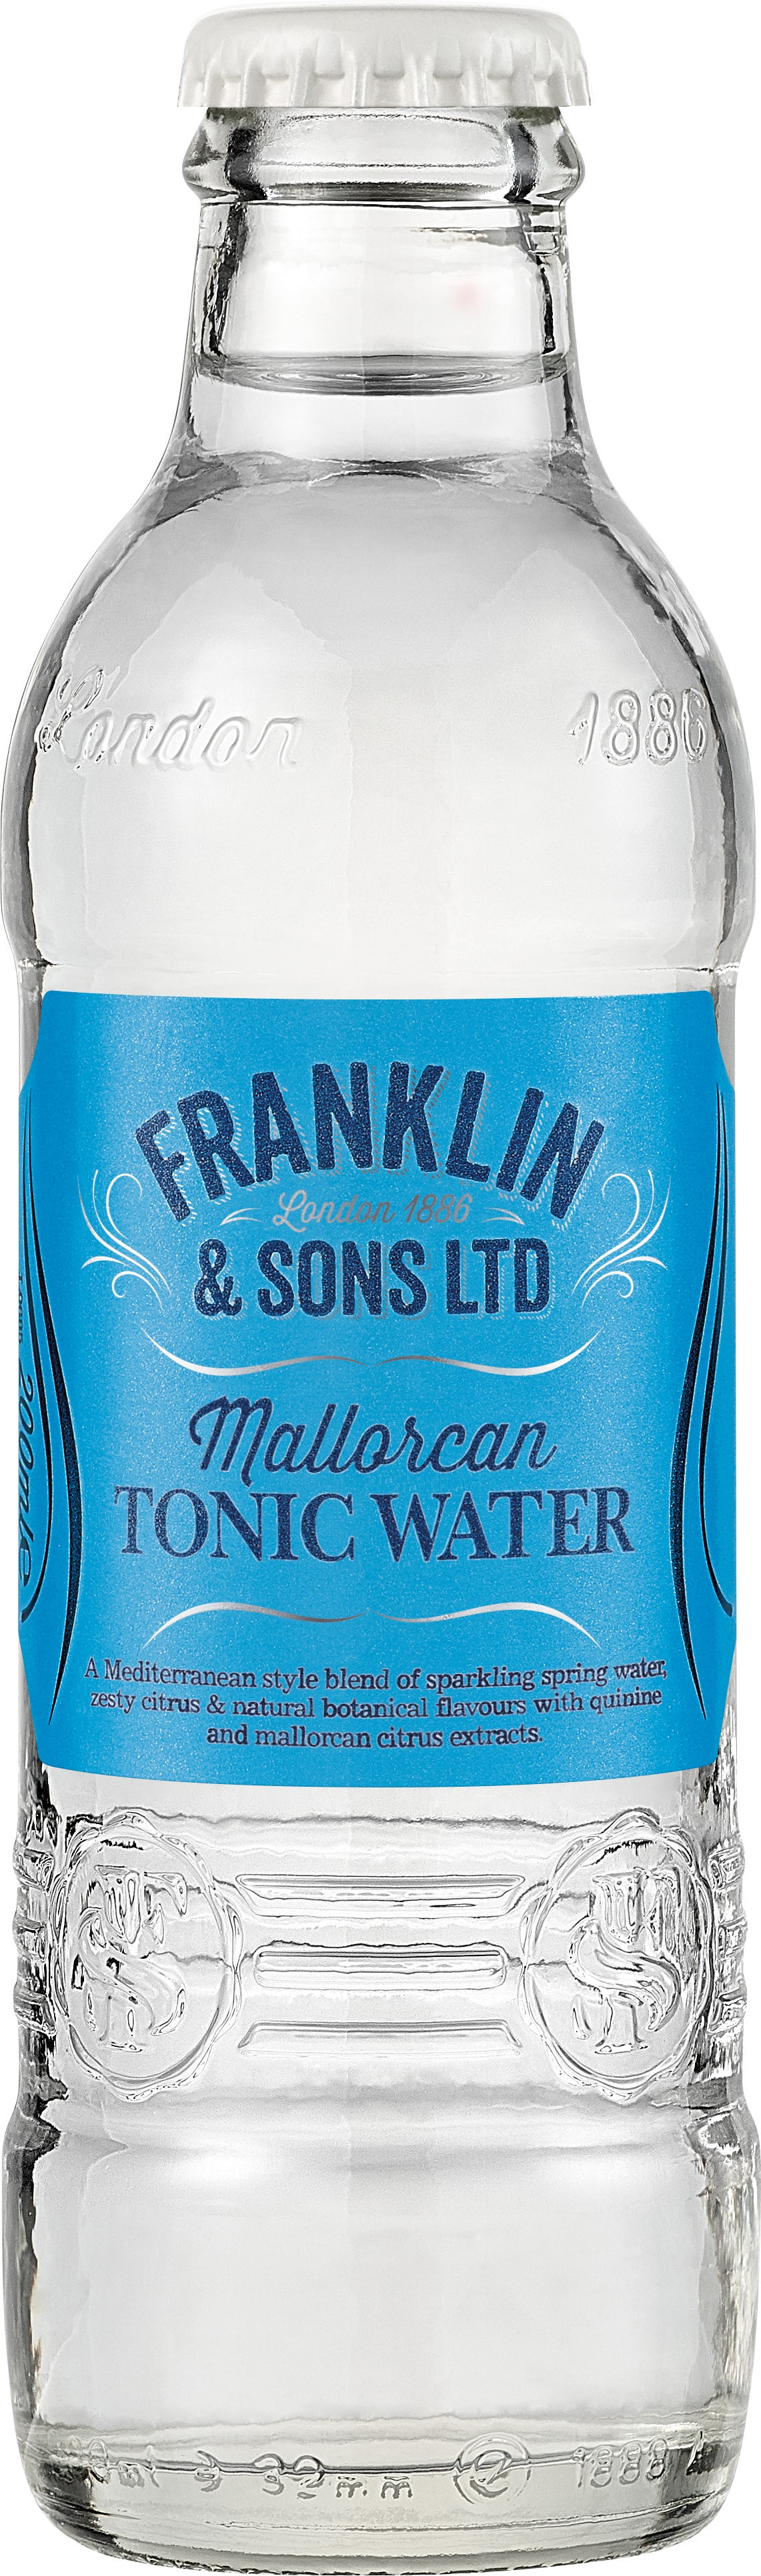 Franklin&Sons Mallorcan Tonic water